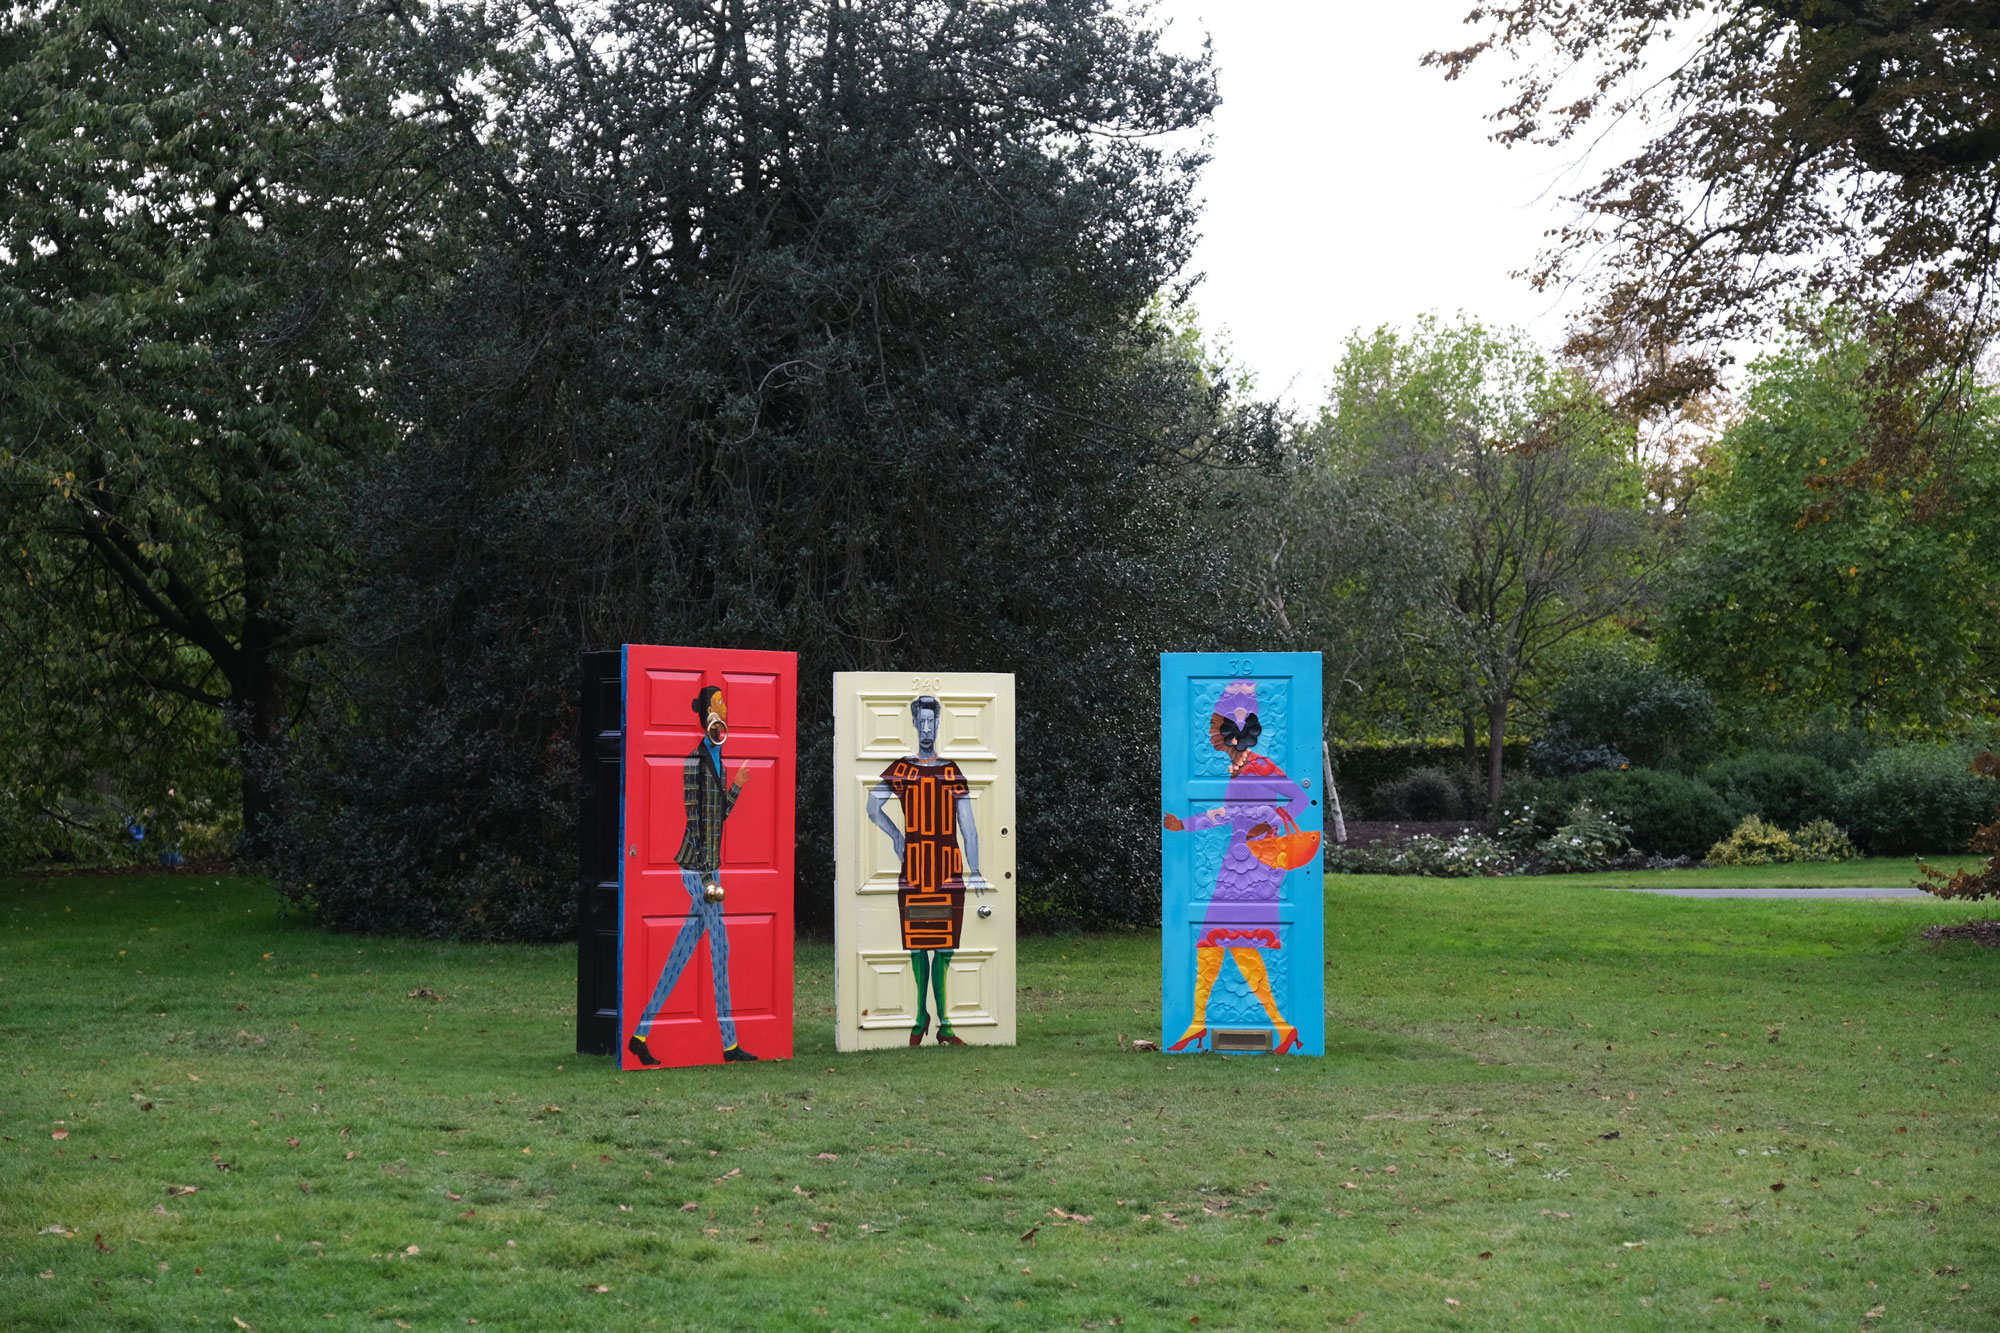 Lubaina Himid, 'Five Conversations (2019'). Hollybush Gardens, Frieze Sculpture 2020. Commissioned by High Line Art, presented by Friends of the High Line and the New York City Department of Parks & Recreation. Photography: Rosella Degori / The Spaces